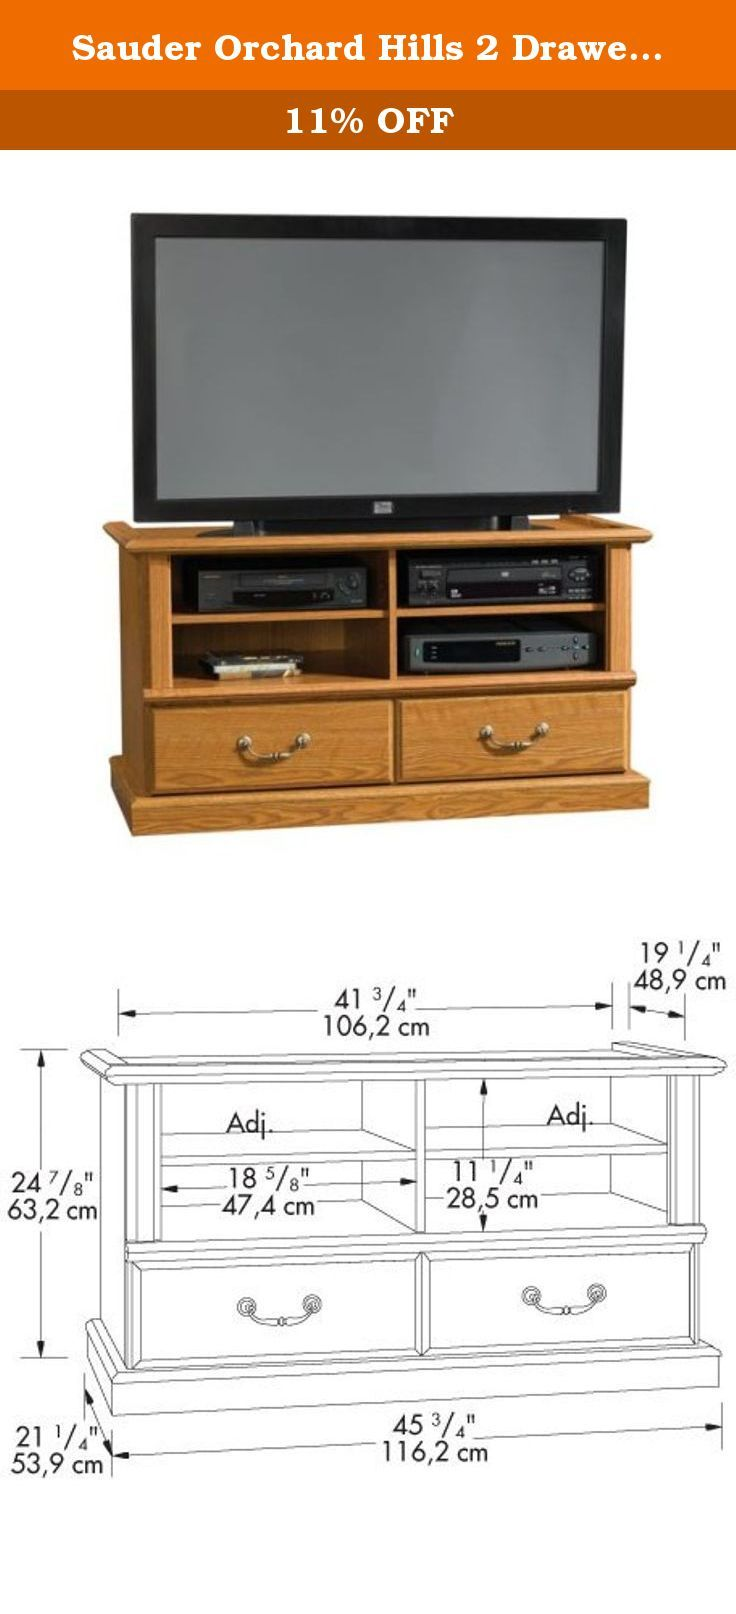 Sauder Orchard Hills 2 Drawer Television Stand You Ll Be Pleasantly